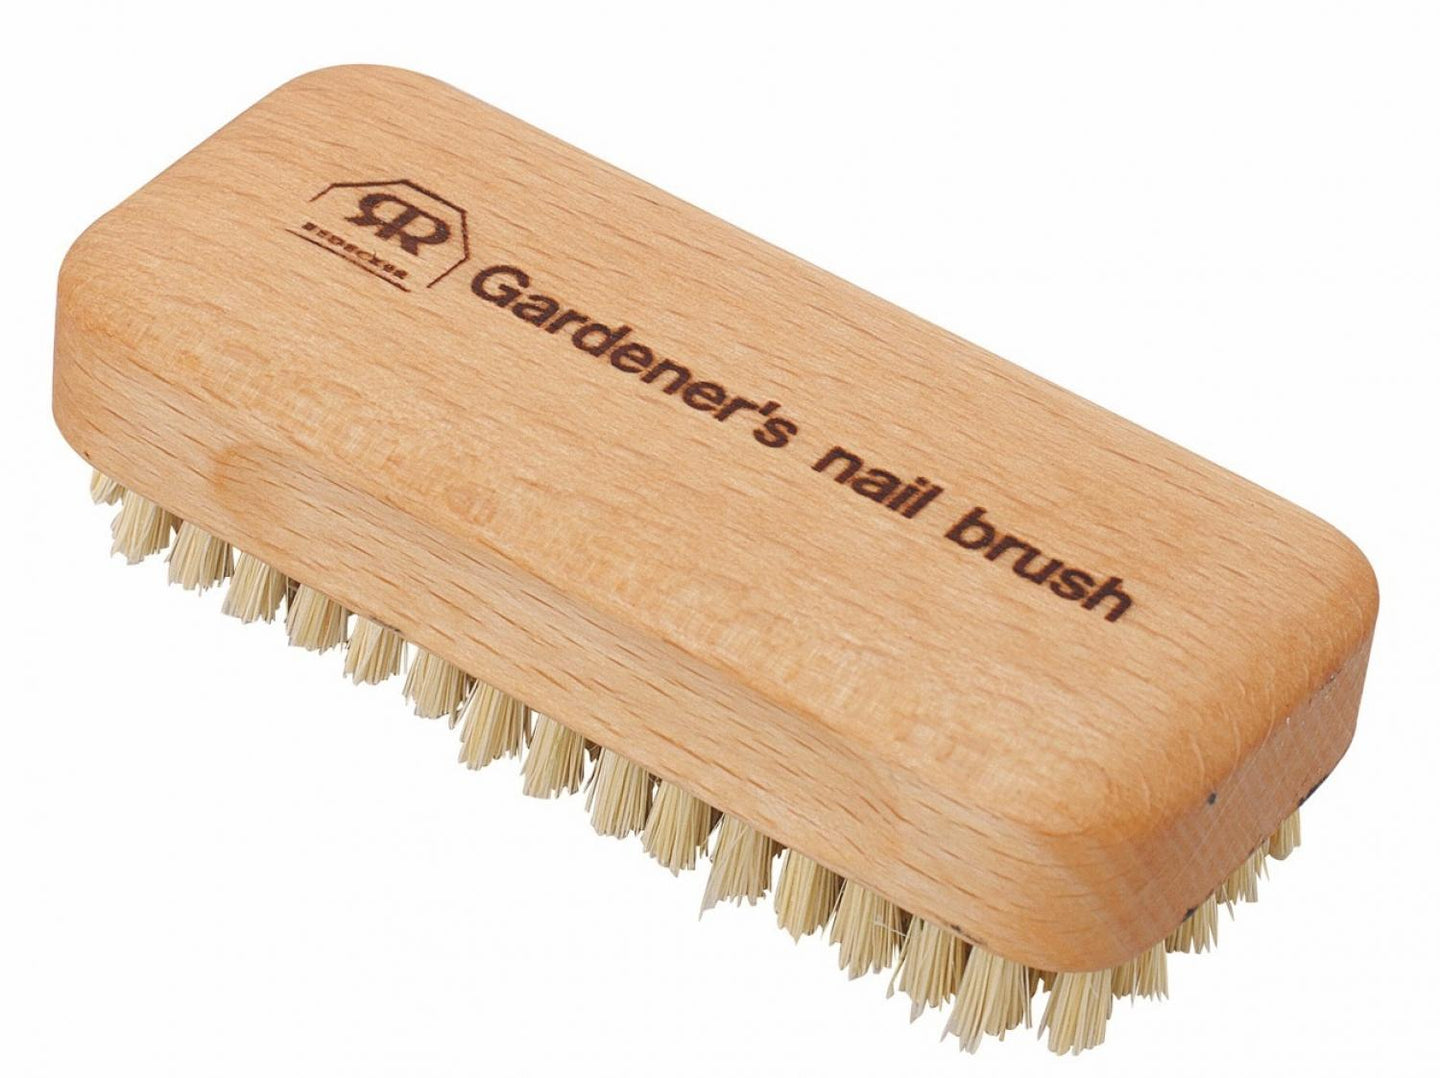 Redecker Gardener's Nail Brush - 4.5cm wide x 10.5cm long